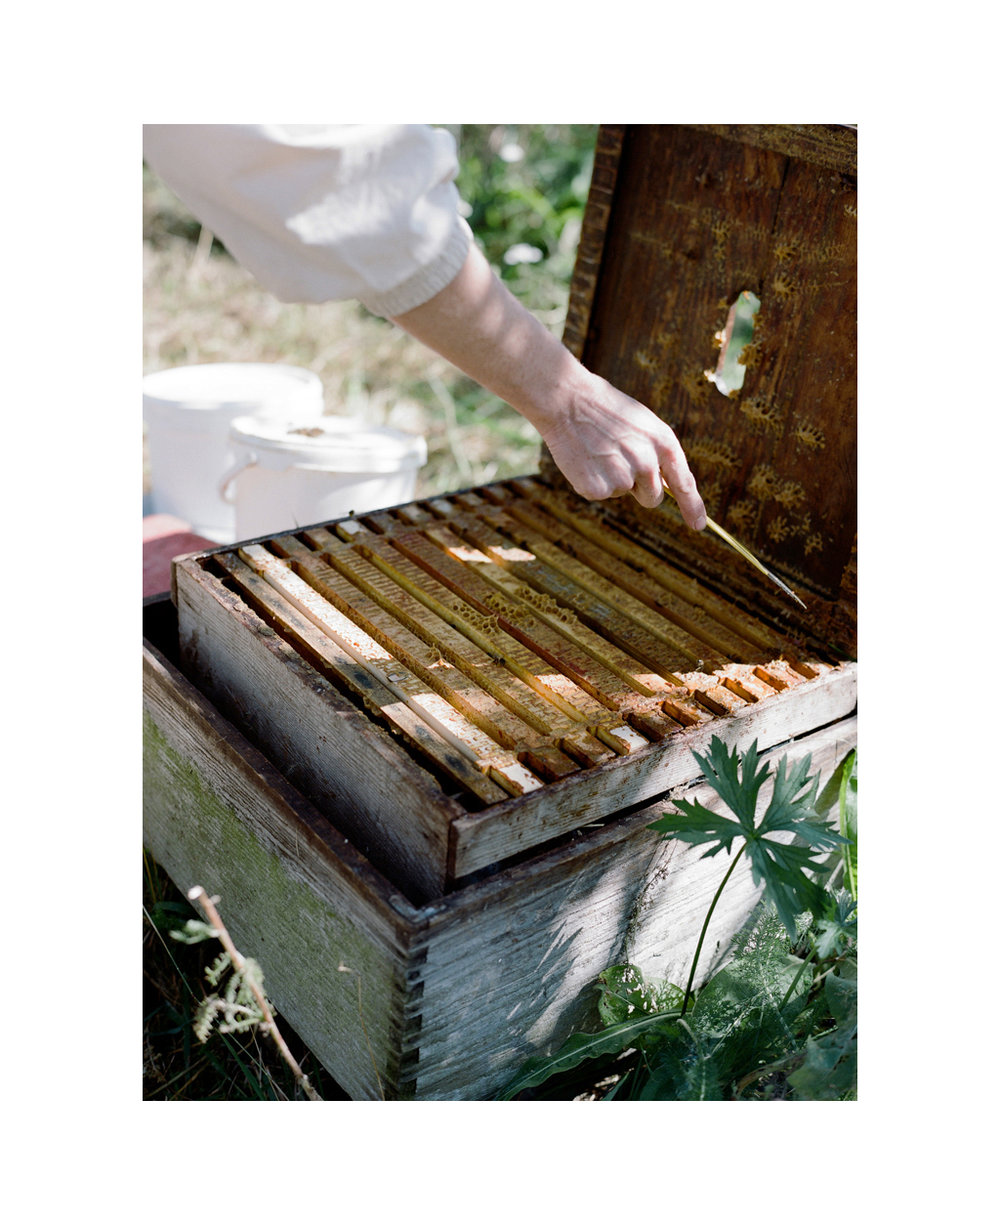 Honey harvest, Cotswolds, UK.